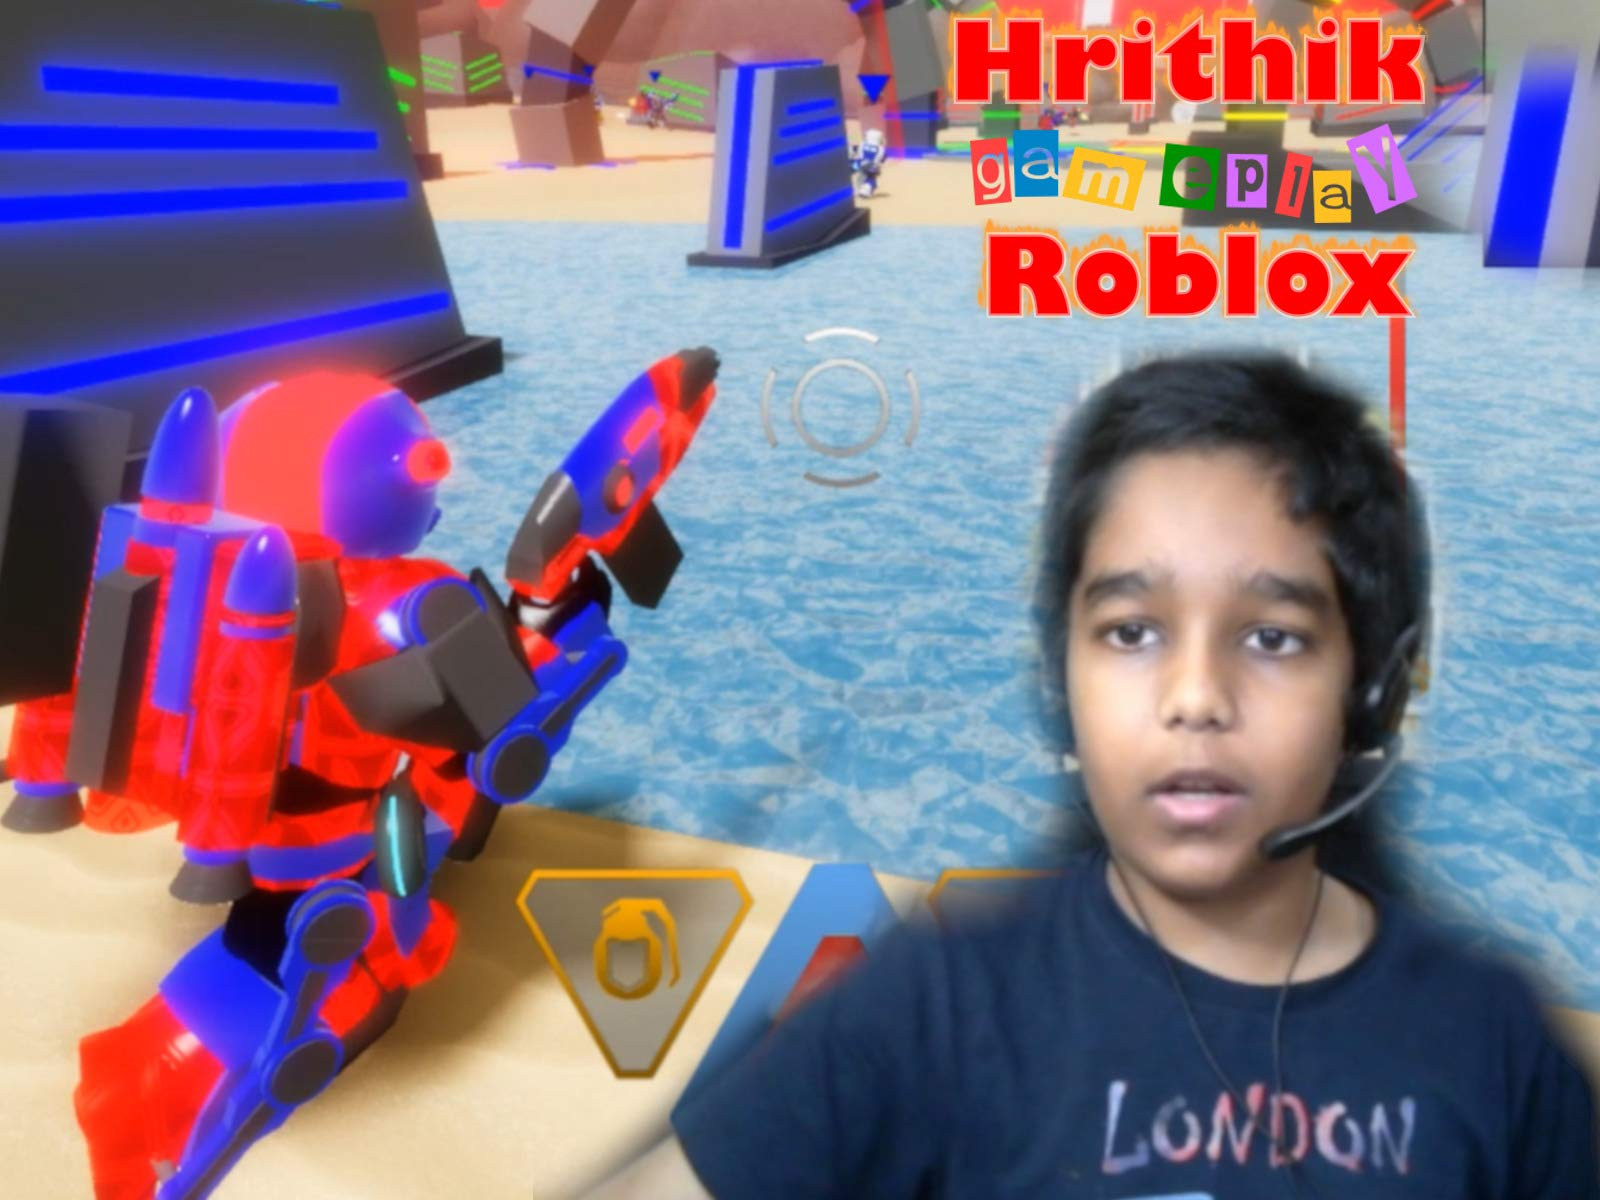 Clip Roblox Gameplay Hrithik Clip Roblox The Robots Watch Clip Roblox Gameplay Hrithik Prime Video